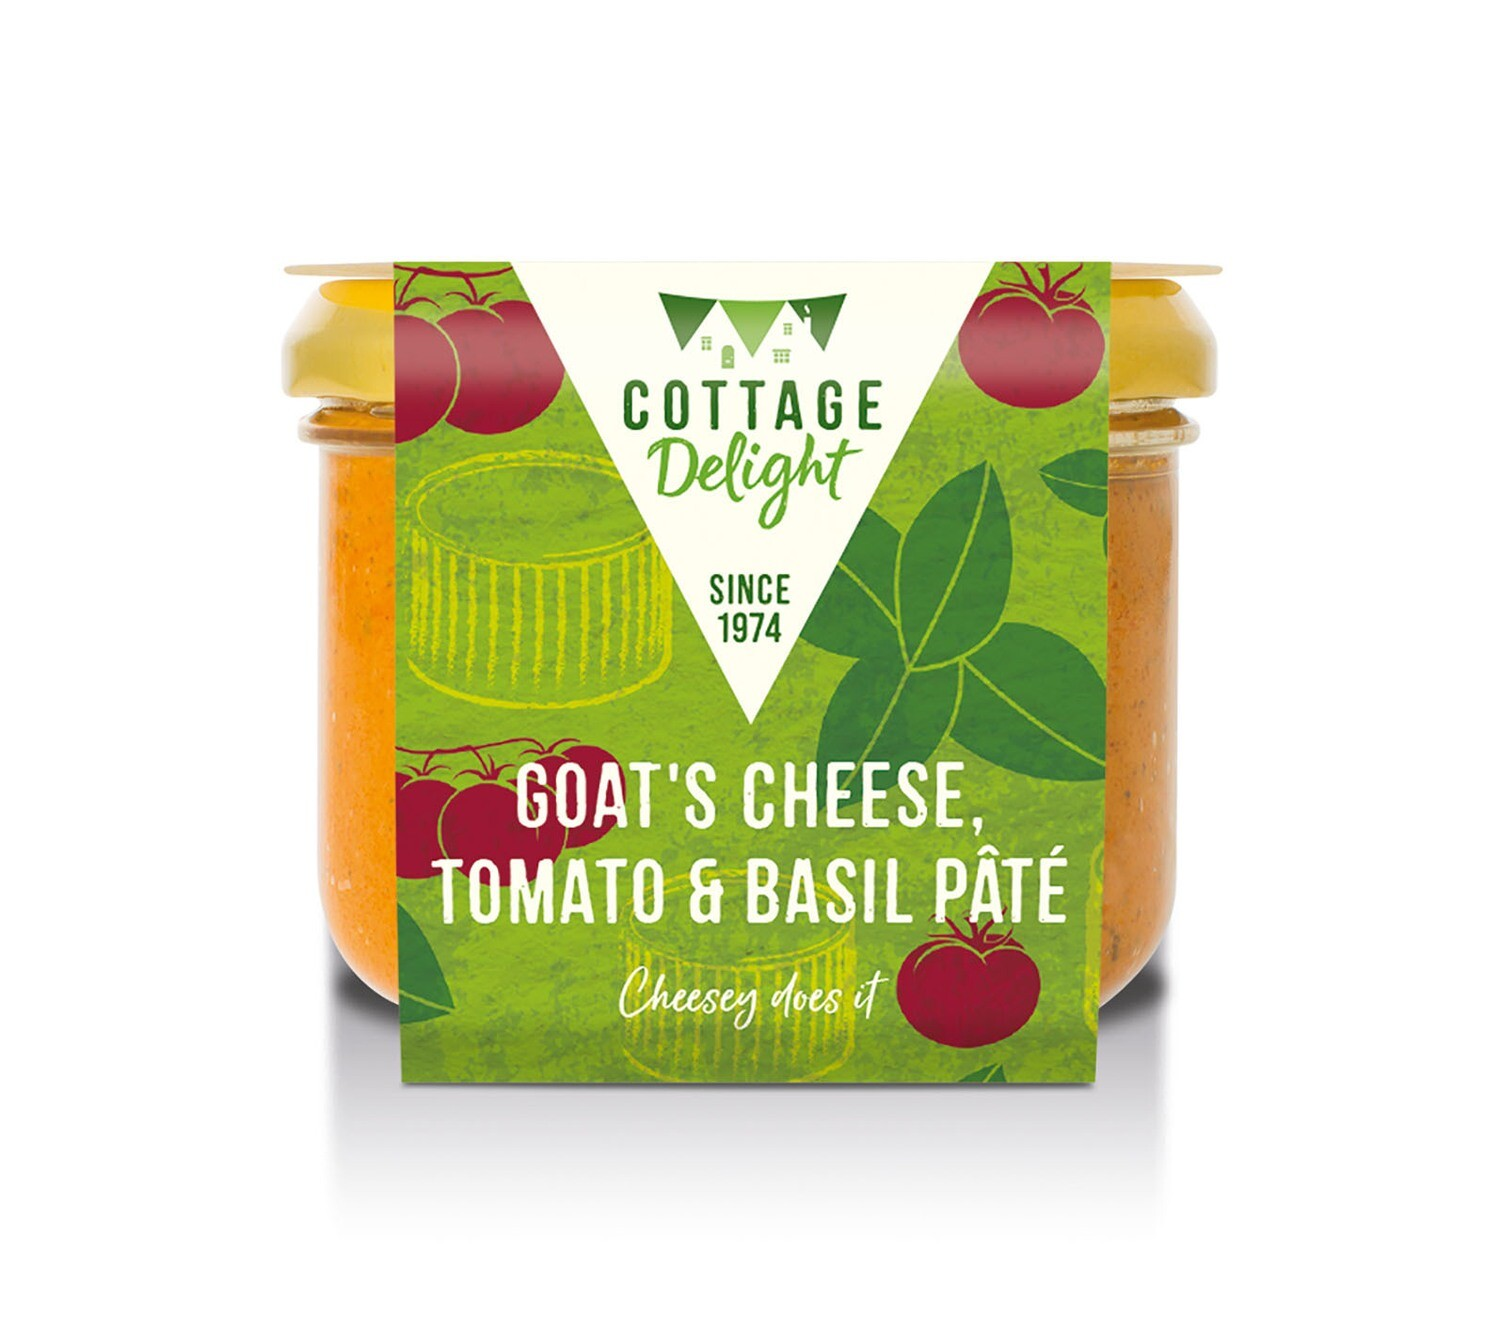 COTTAGE DELIGHT GOATS CHEESE PATE 180G